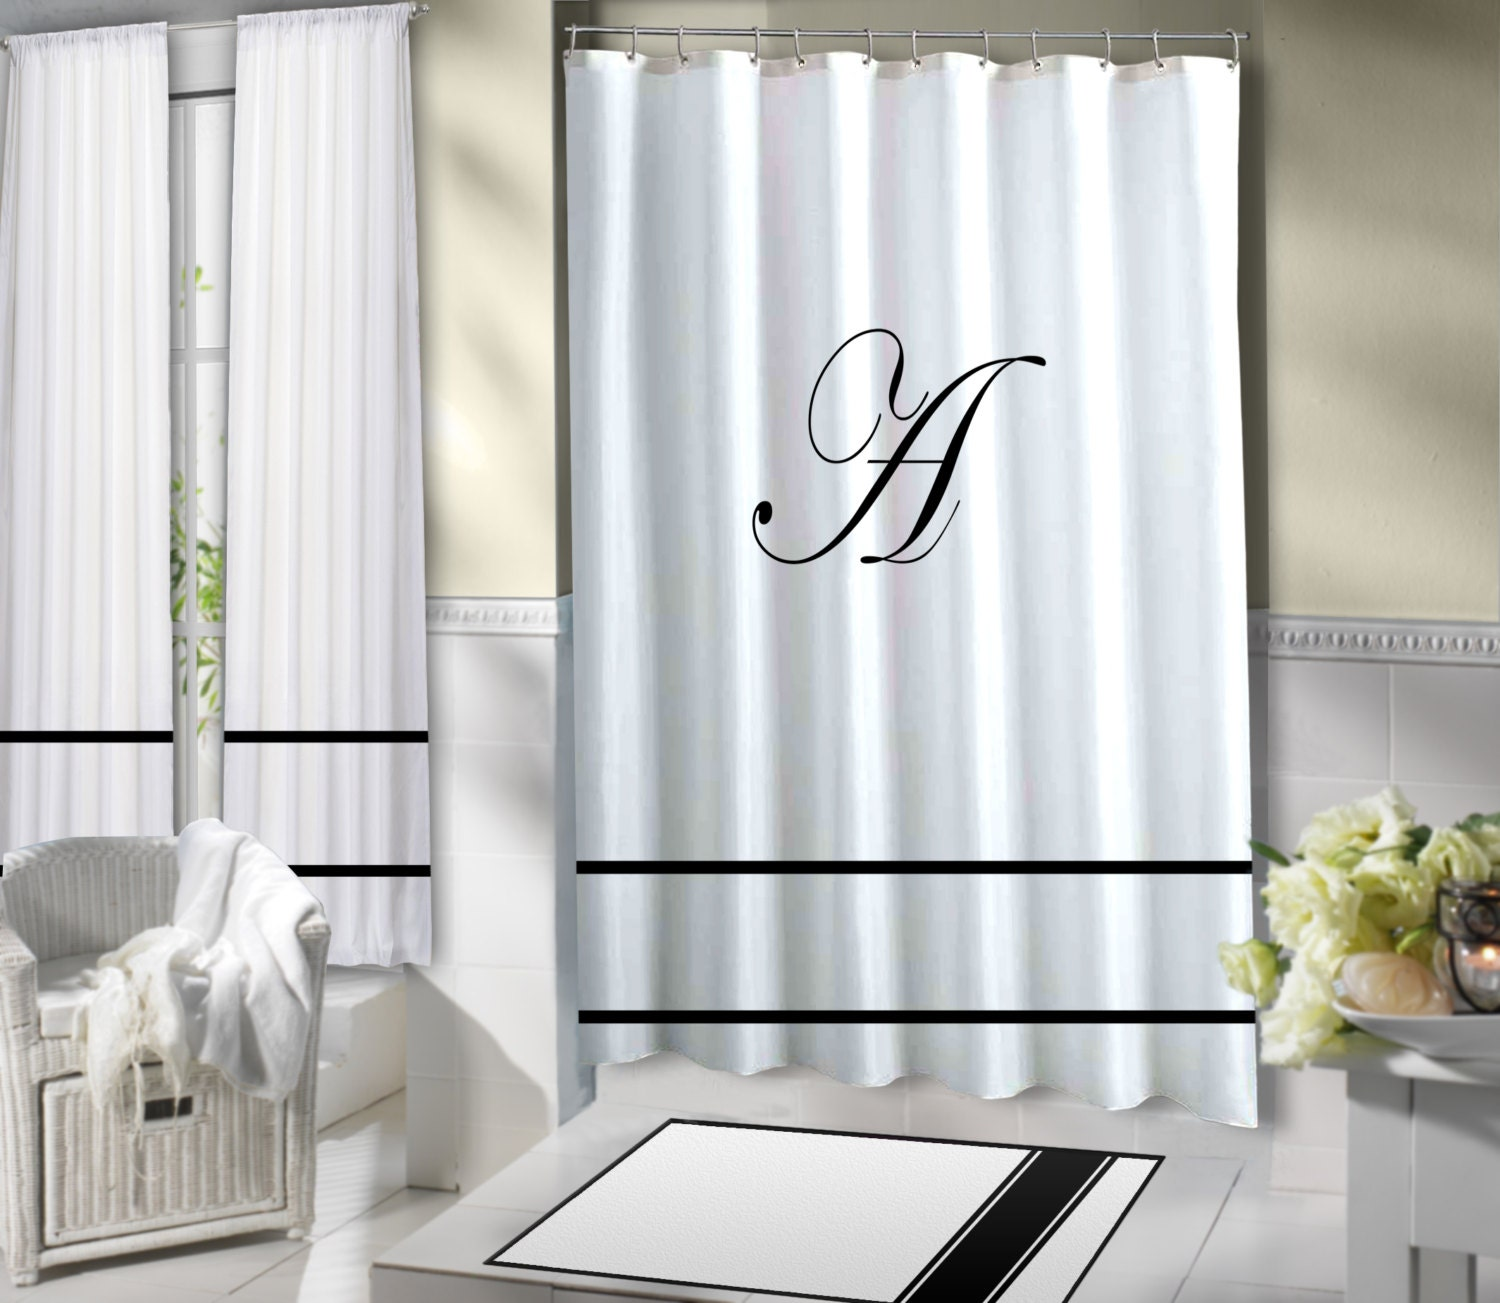 Shower Curtain Monogram Shower Curtain Fabric White